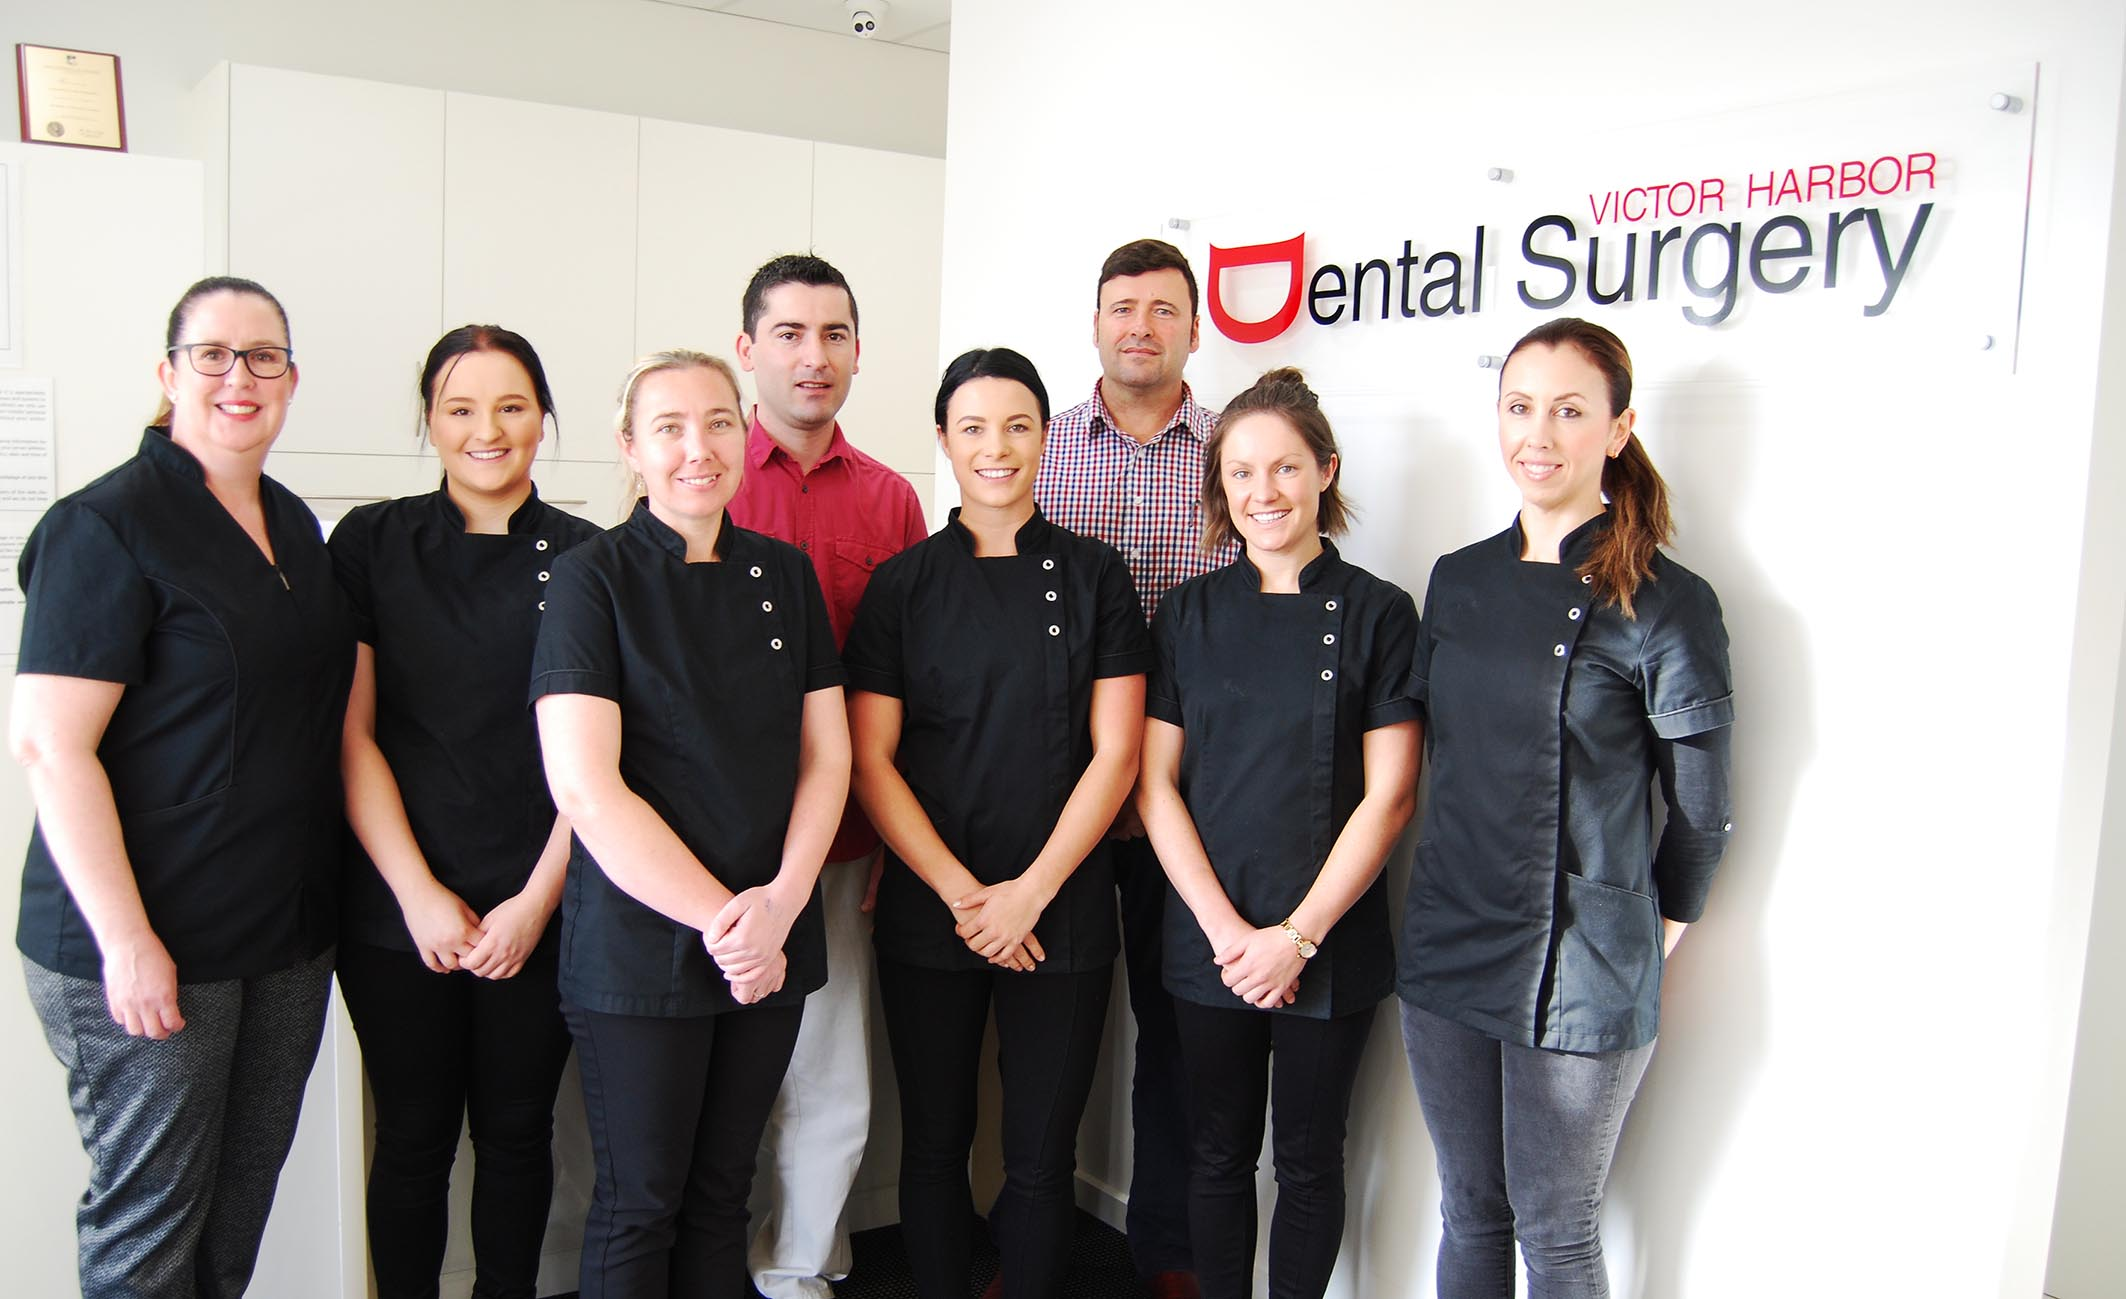 Victor Harbor Dental Surgery Normanville Dental Surgery - dentist